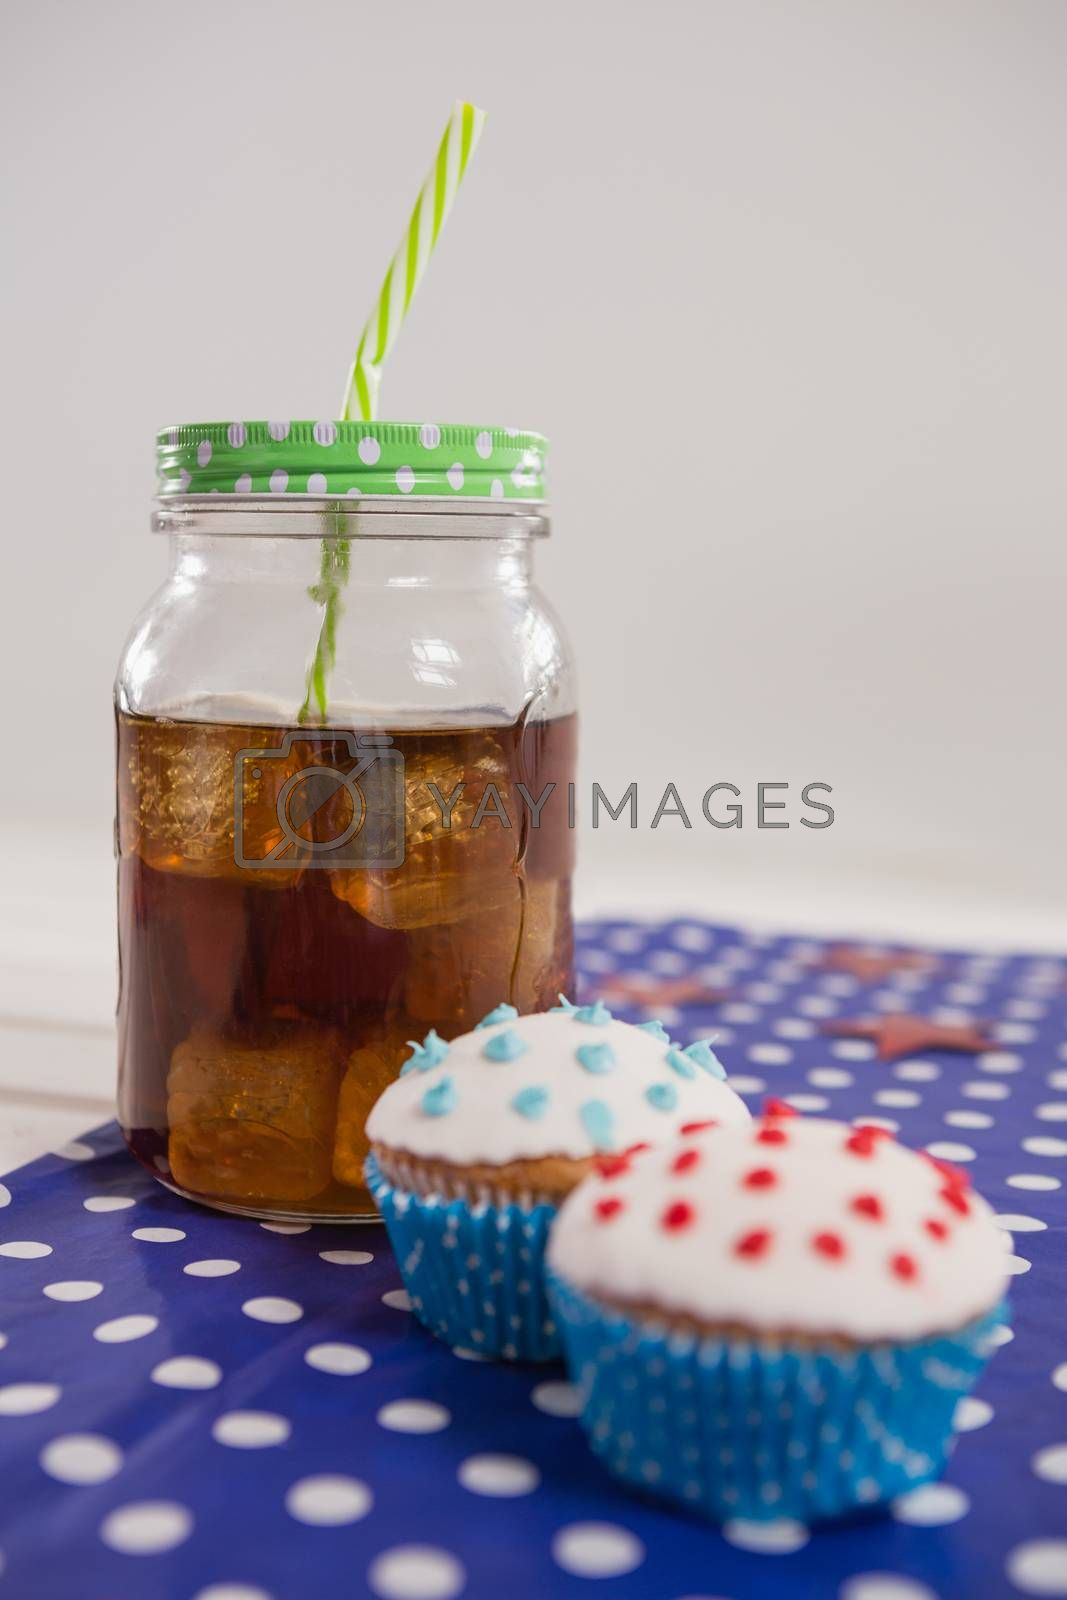 Close-up of drink and cupcake with 4th july theme by Wavebreakmedia